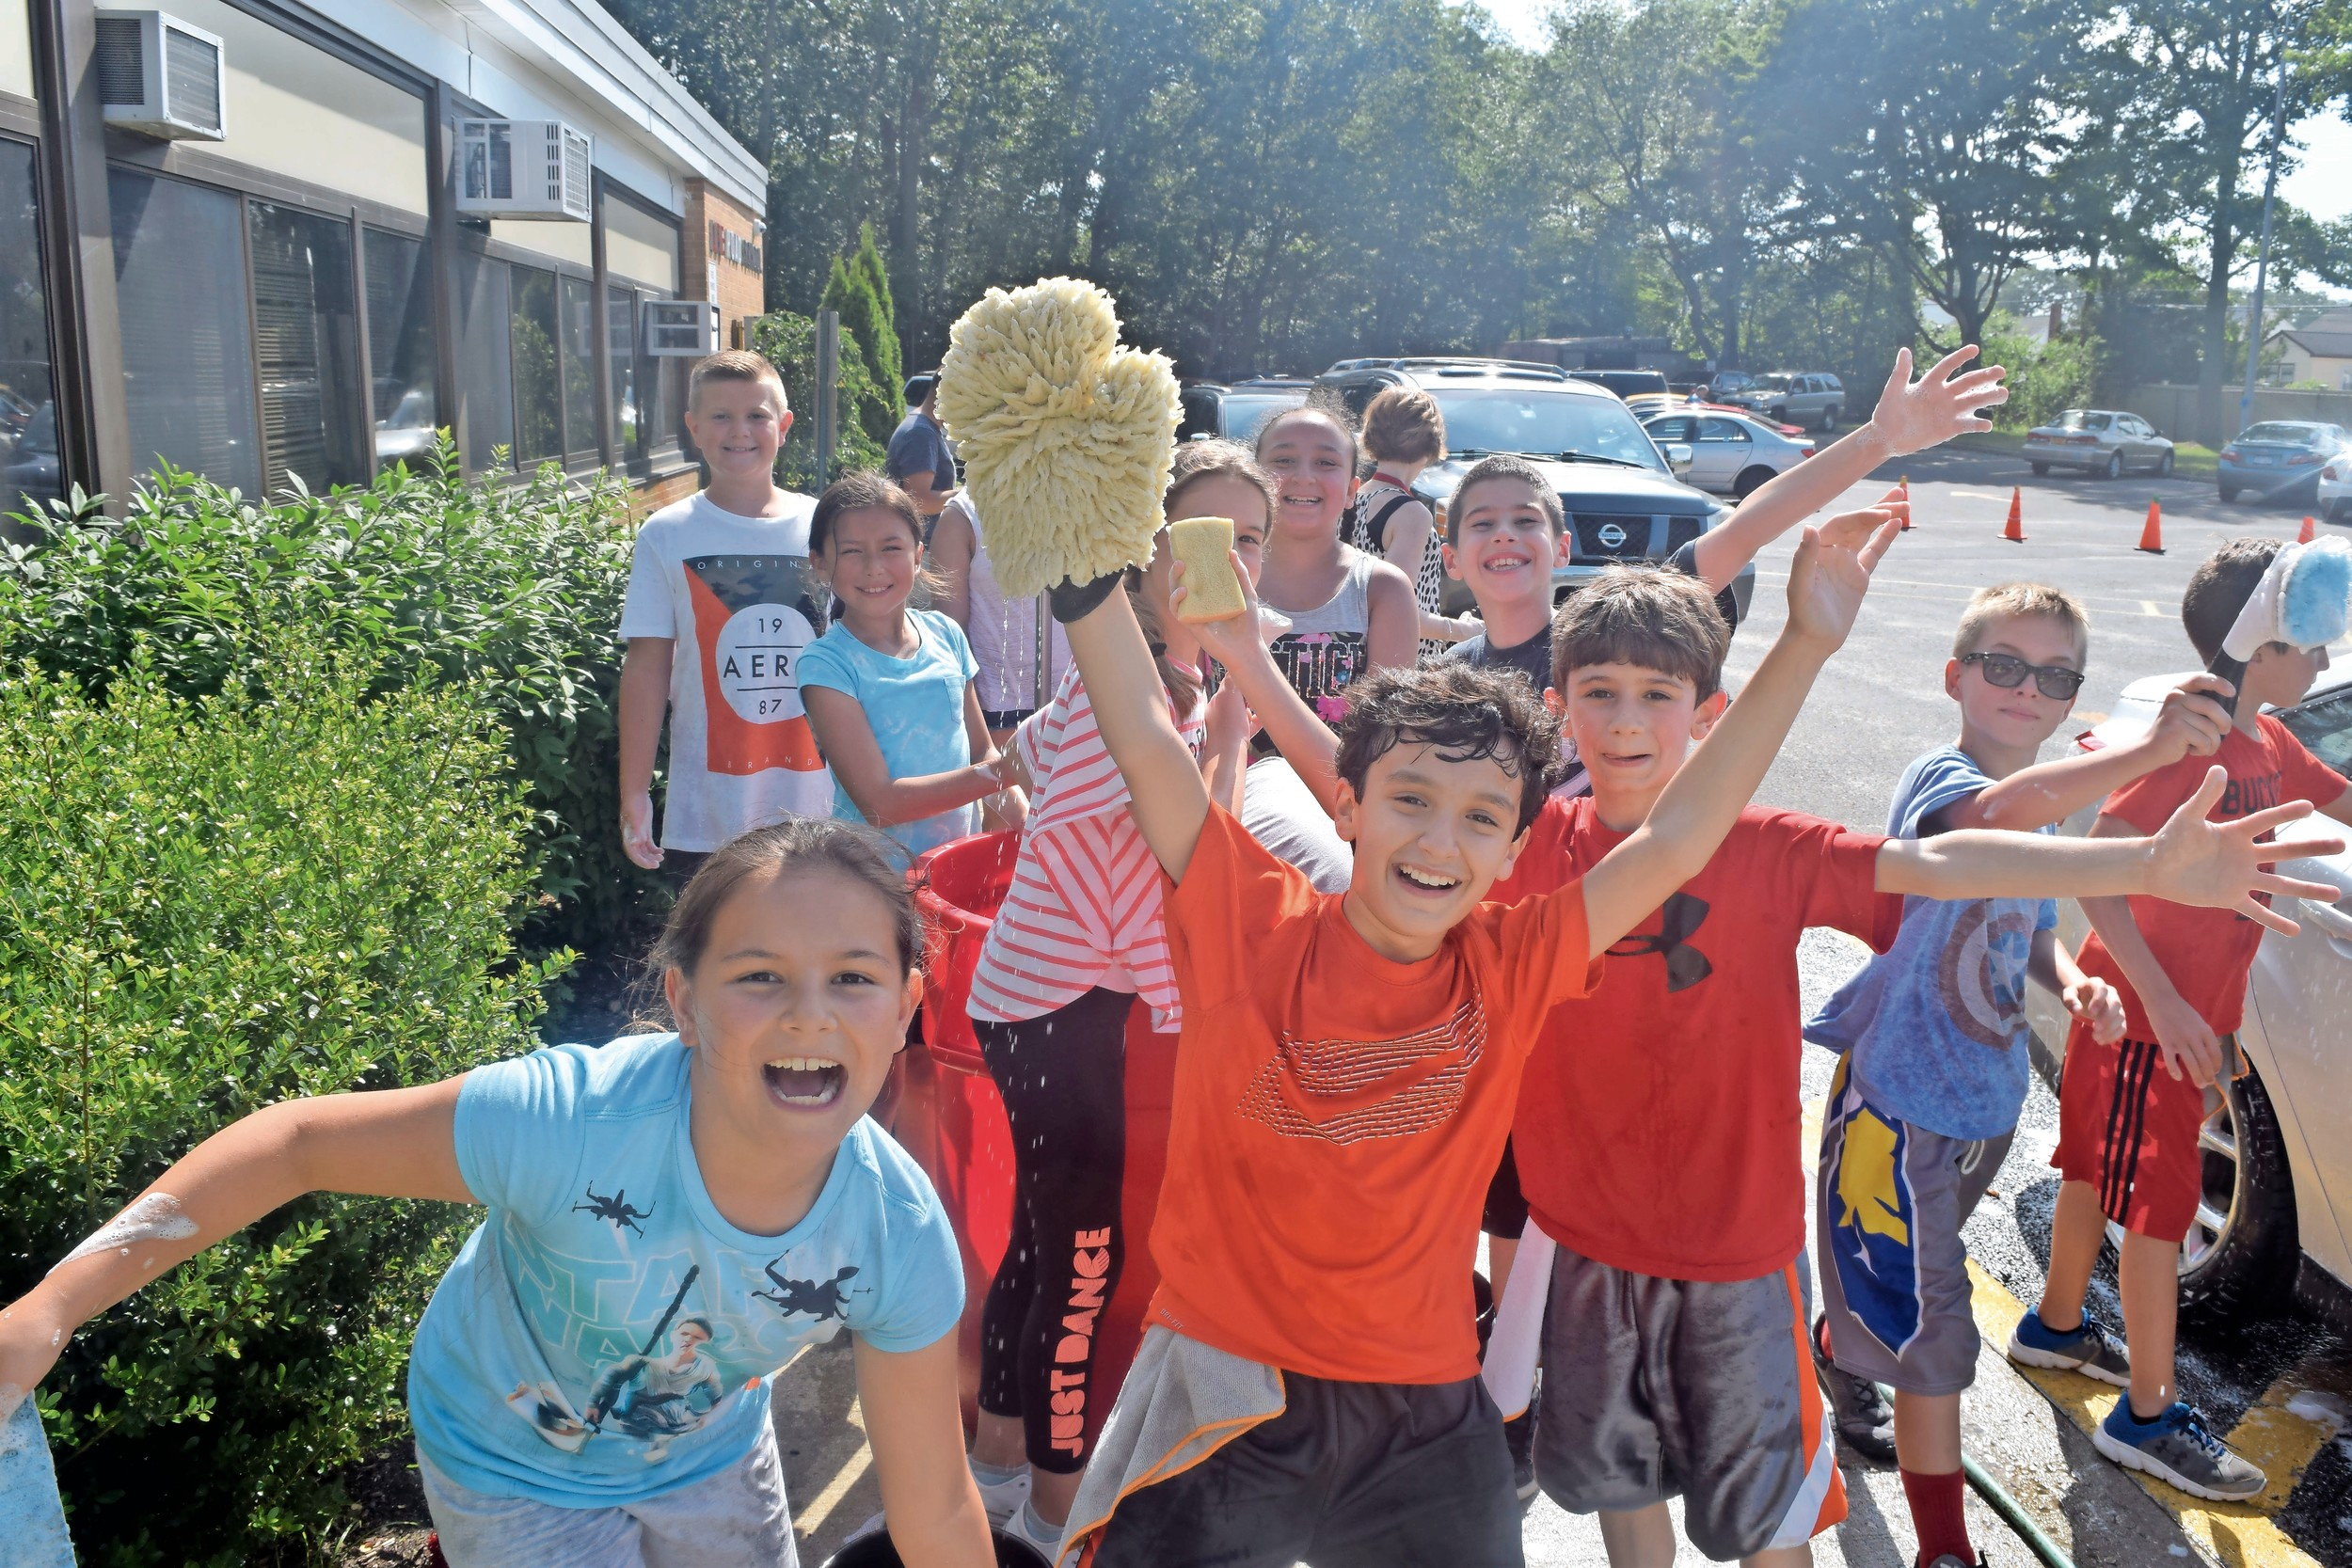 Lee Road Elementary students got super soapy at an end-of-the-year car wash — a fundraiser for the North Wantagh school's character education program — on June 19.